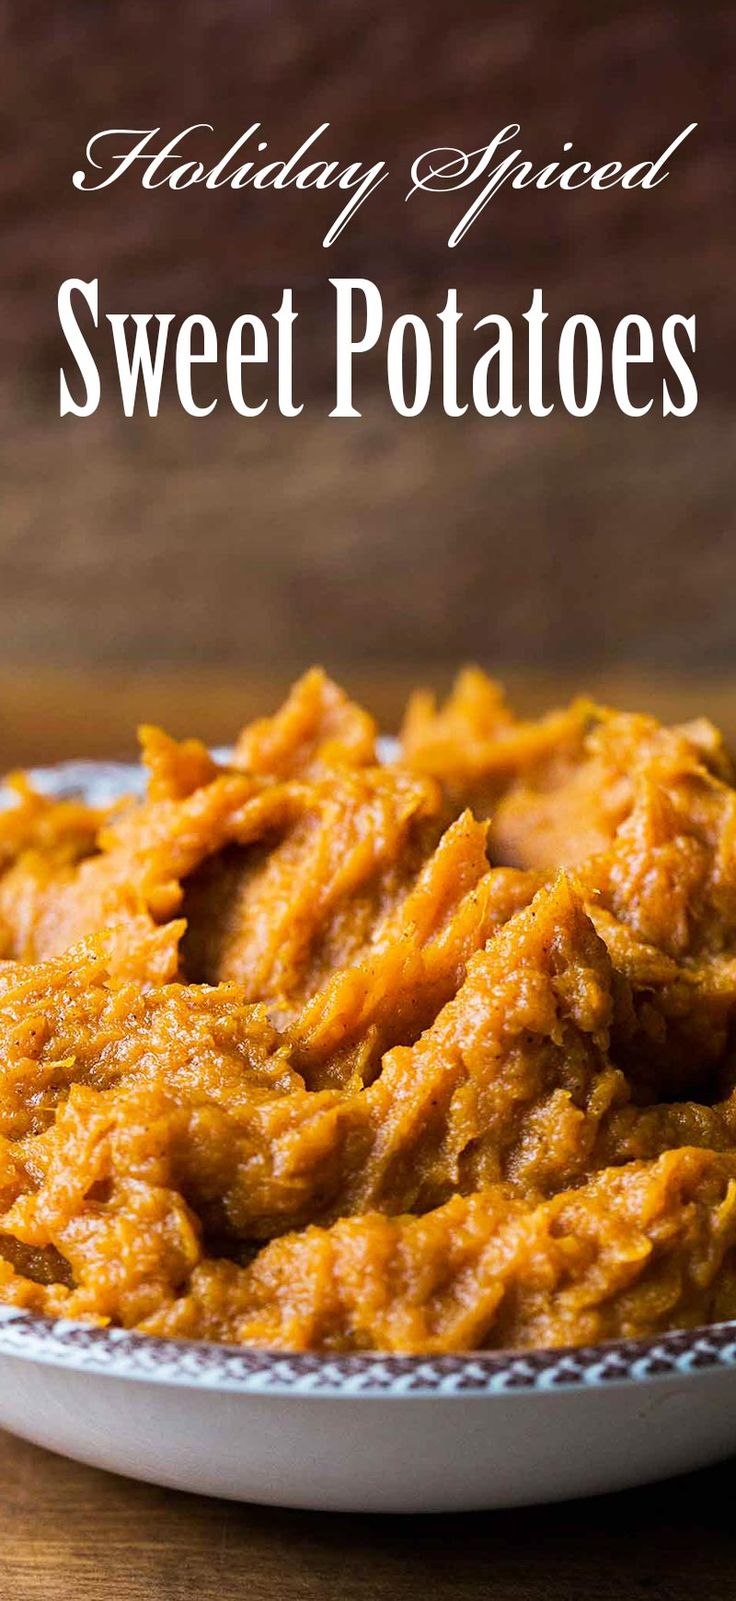 Mashed sweet potato yams with butter, brown sugar, and holiday spices. Perfect for Thanksgiving!